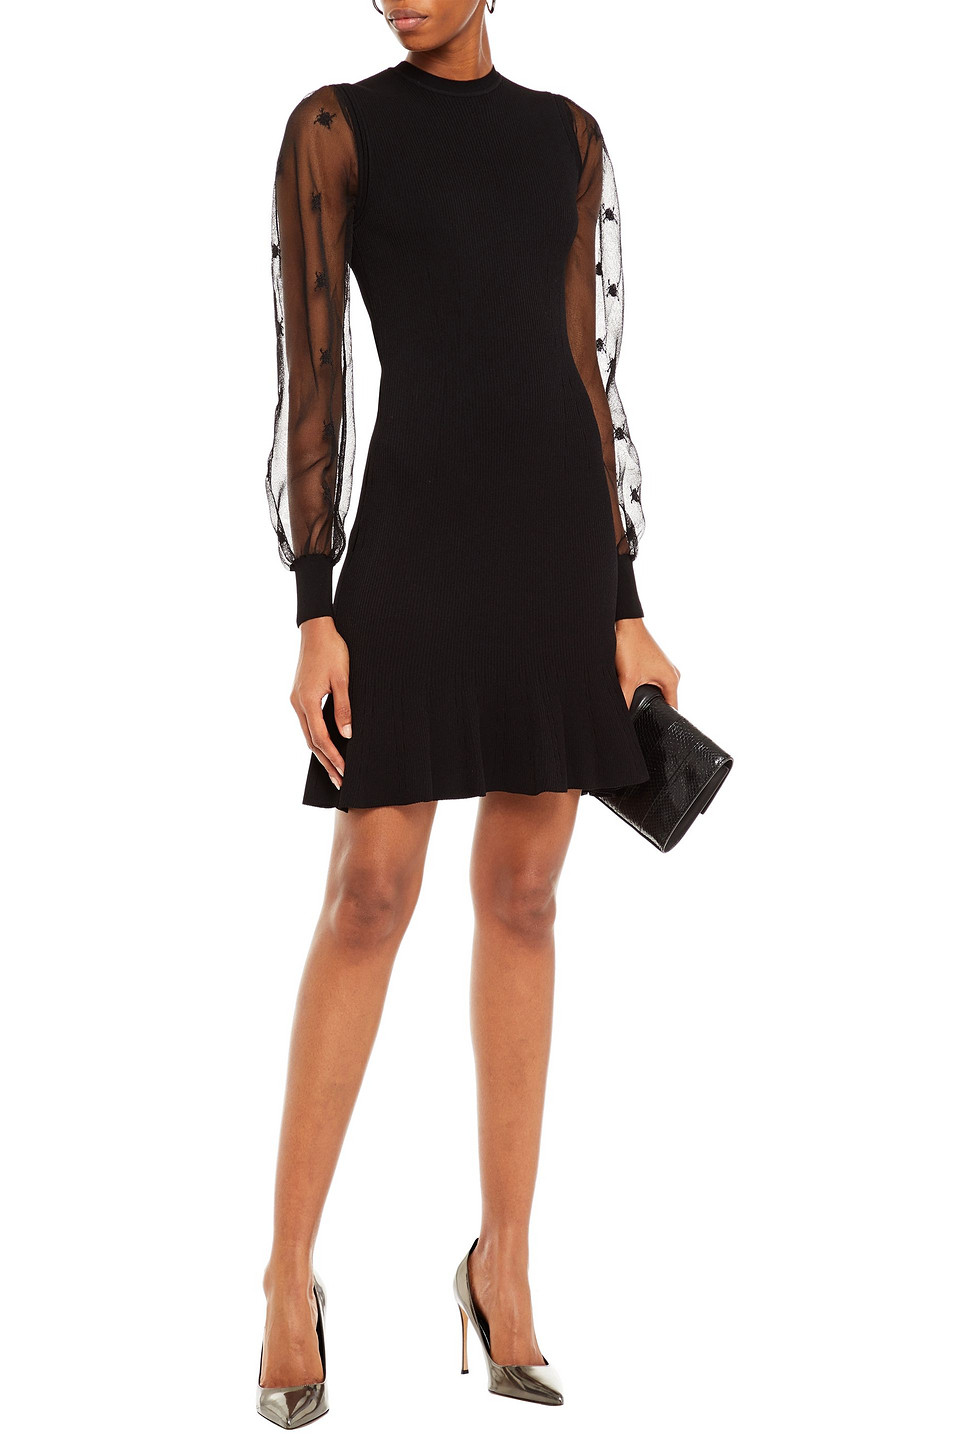 Alexander McQueen | Alexander Mcqueen Woman Burnout-effect Embroidered Ribbed-knit Mini Dress Black | Clouty